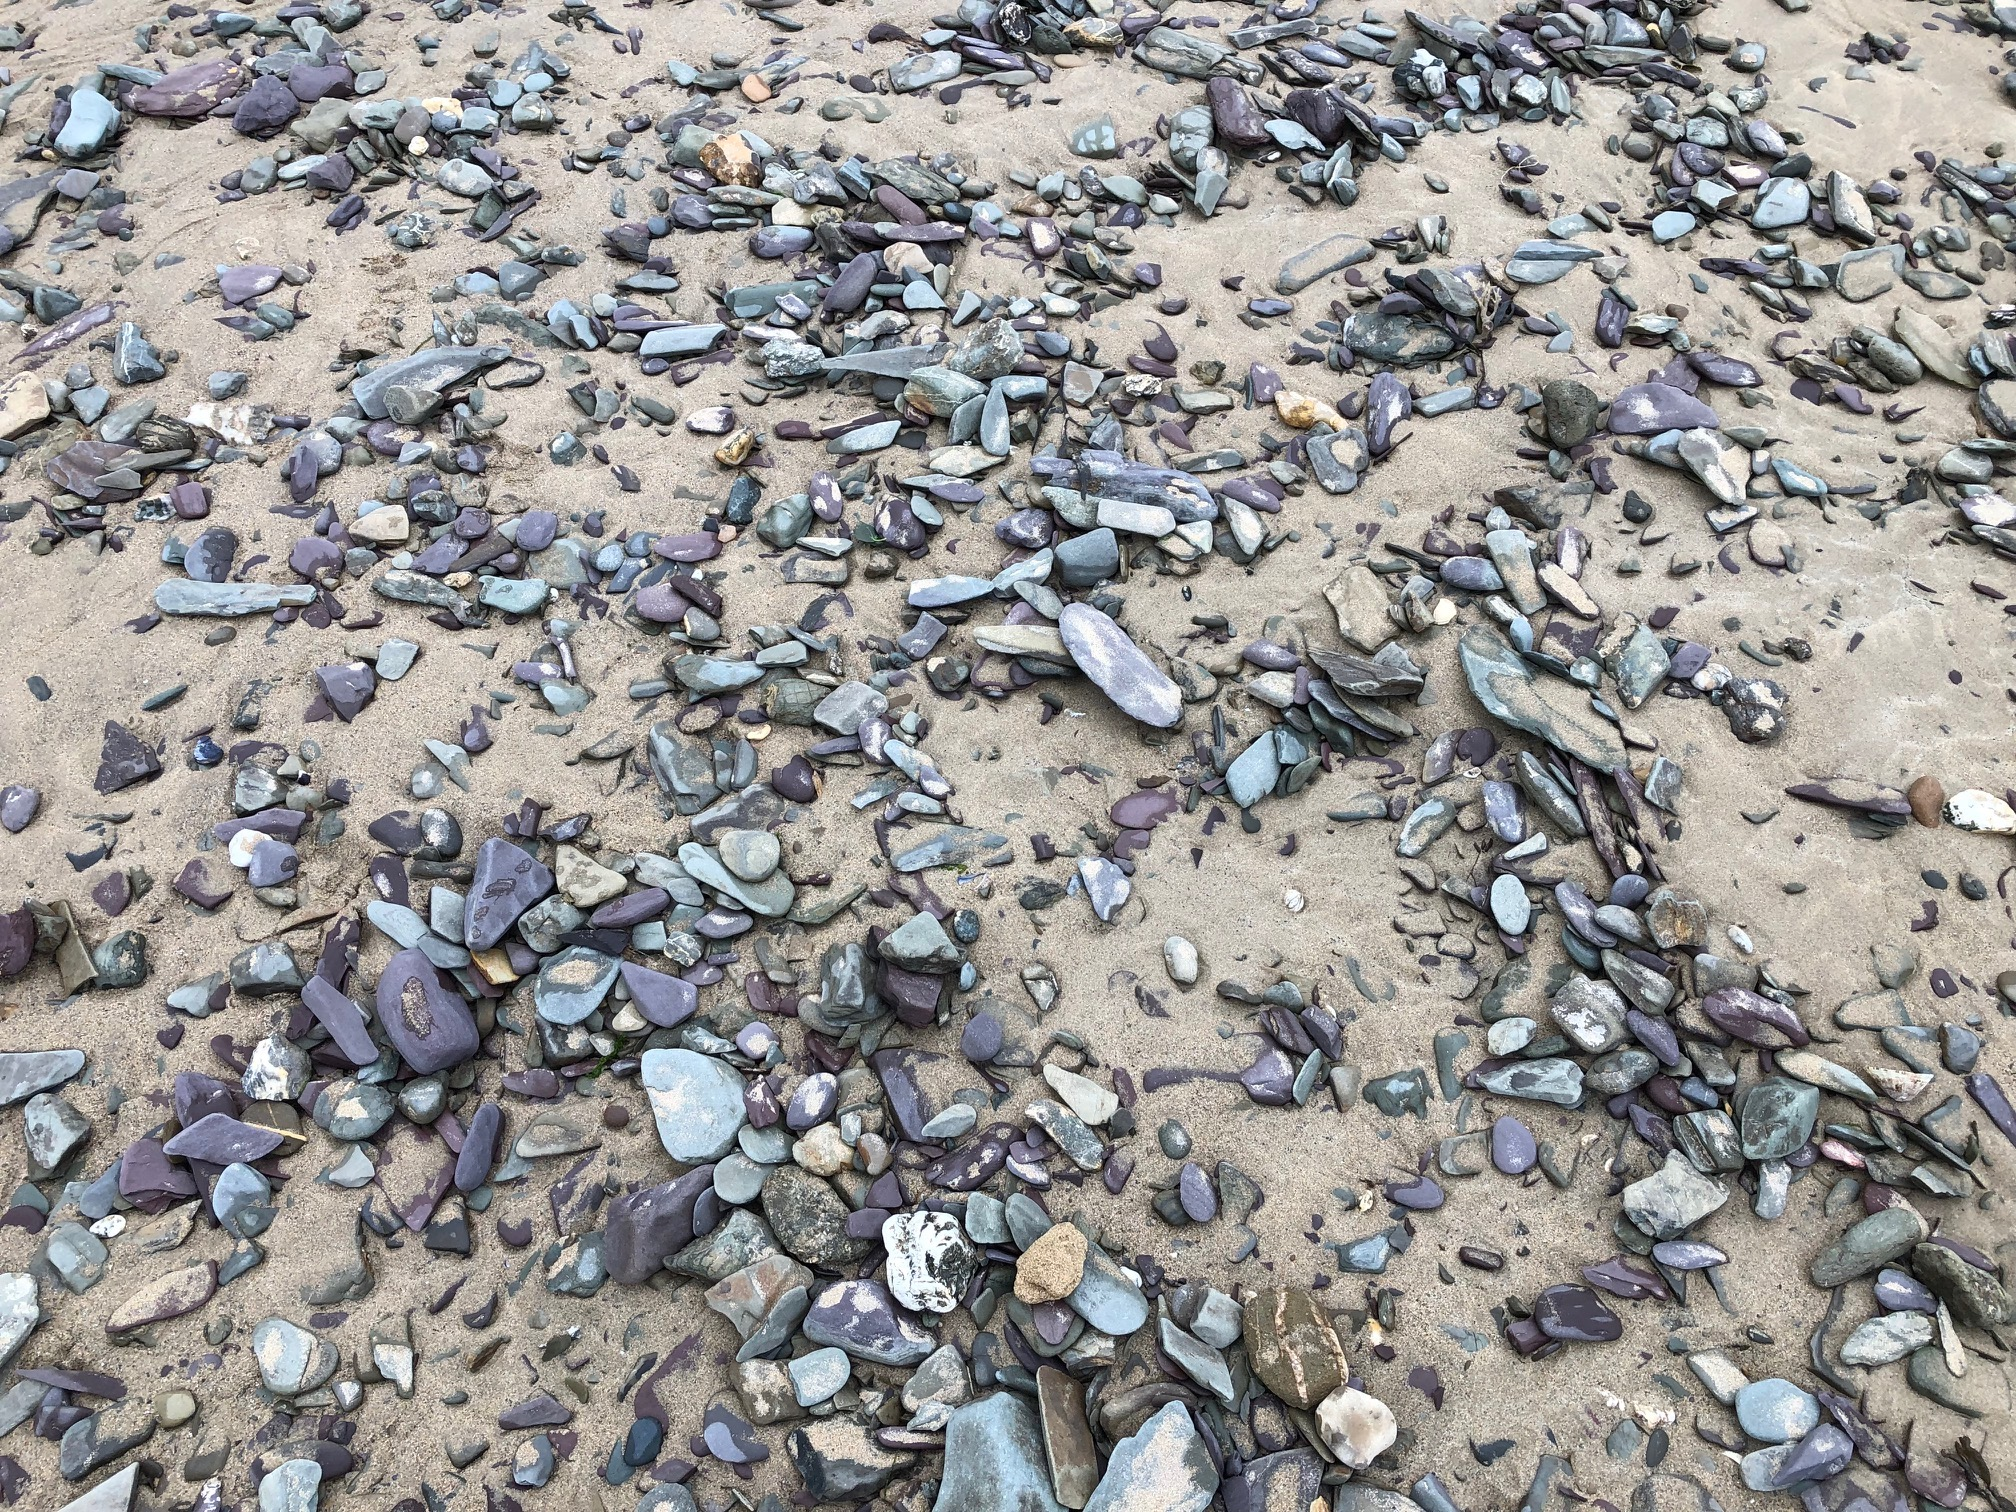 Blue and purple stones on a beach